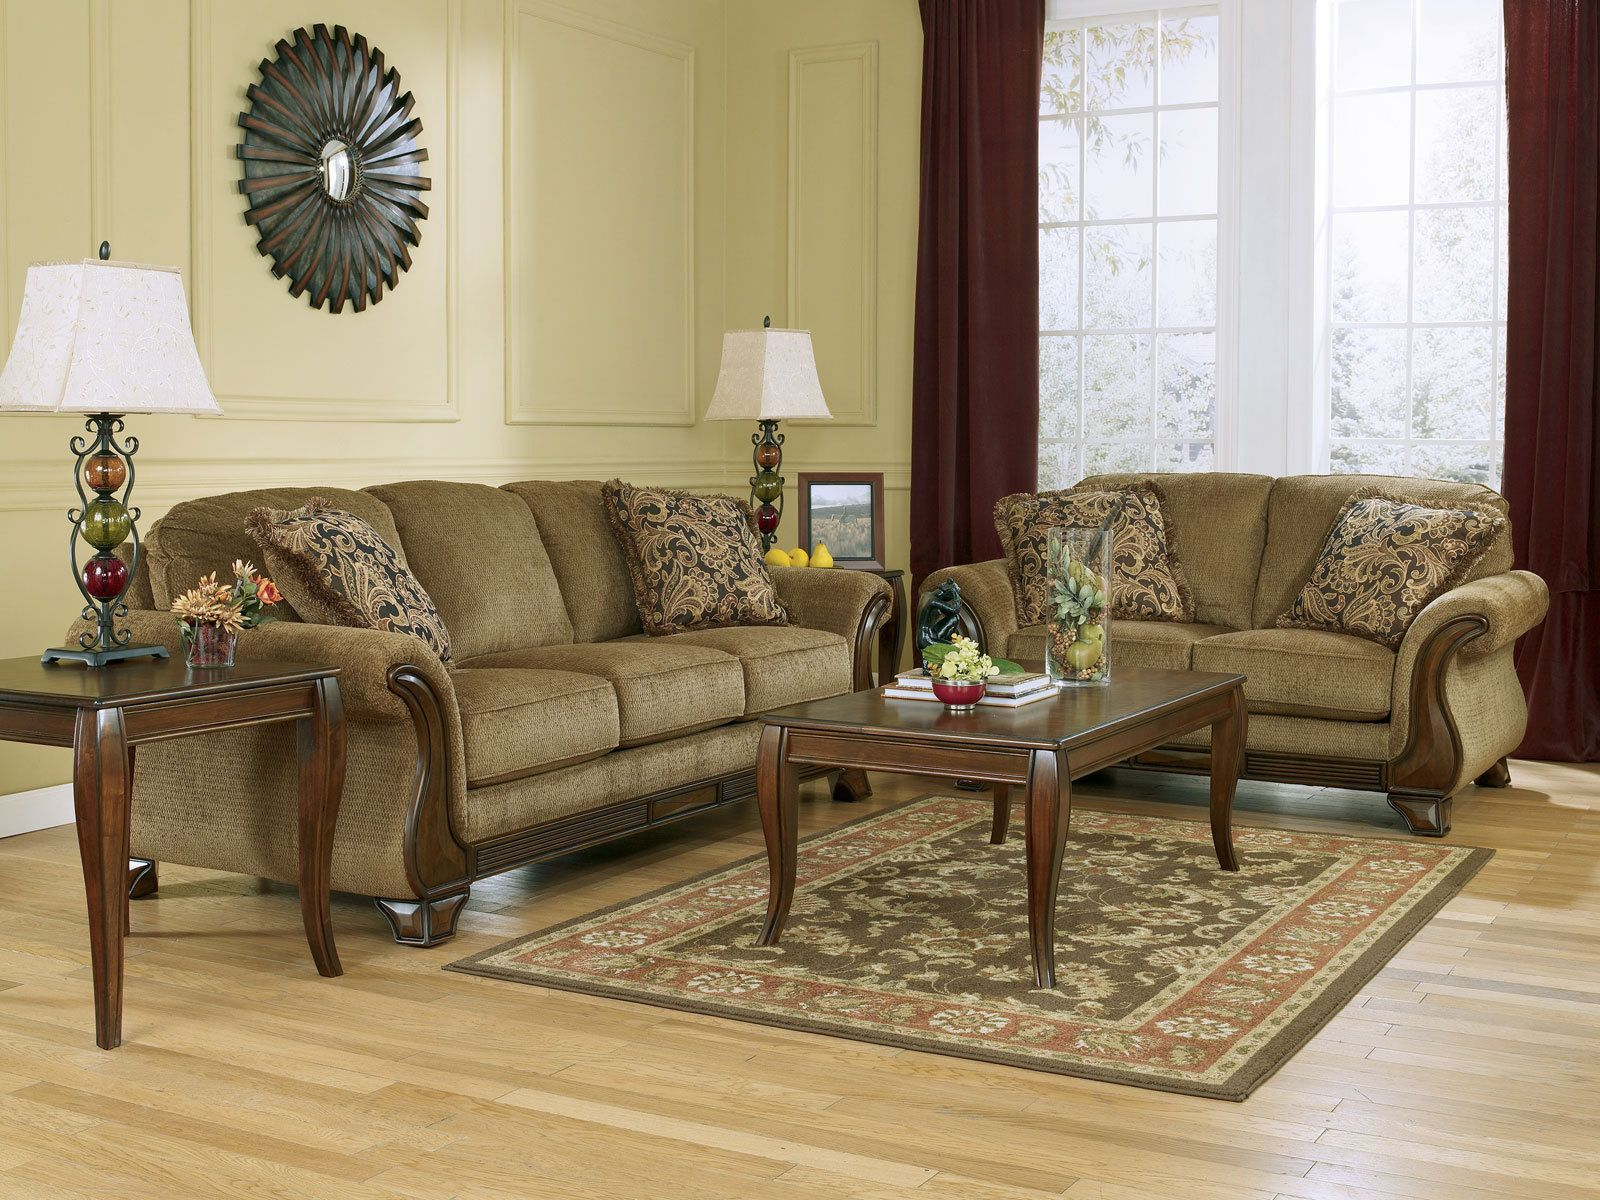 Santiago Traditional Brown Fabric Wood Trim Sofa Couch Set